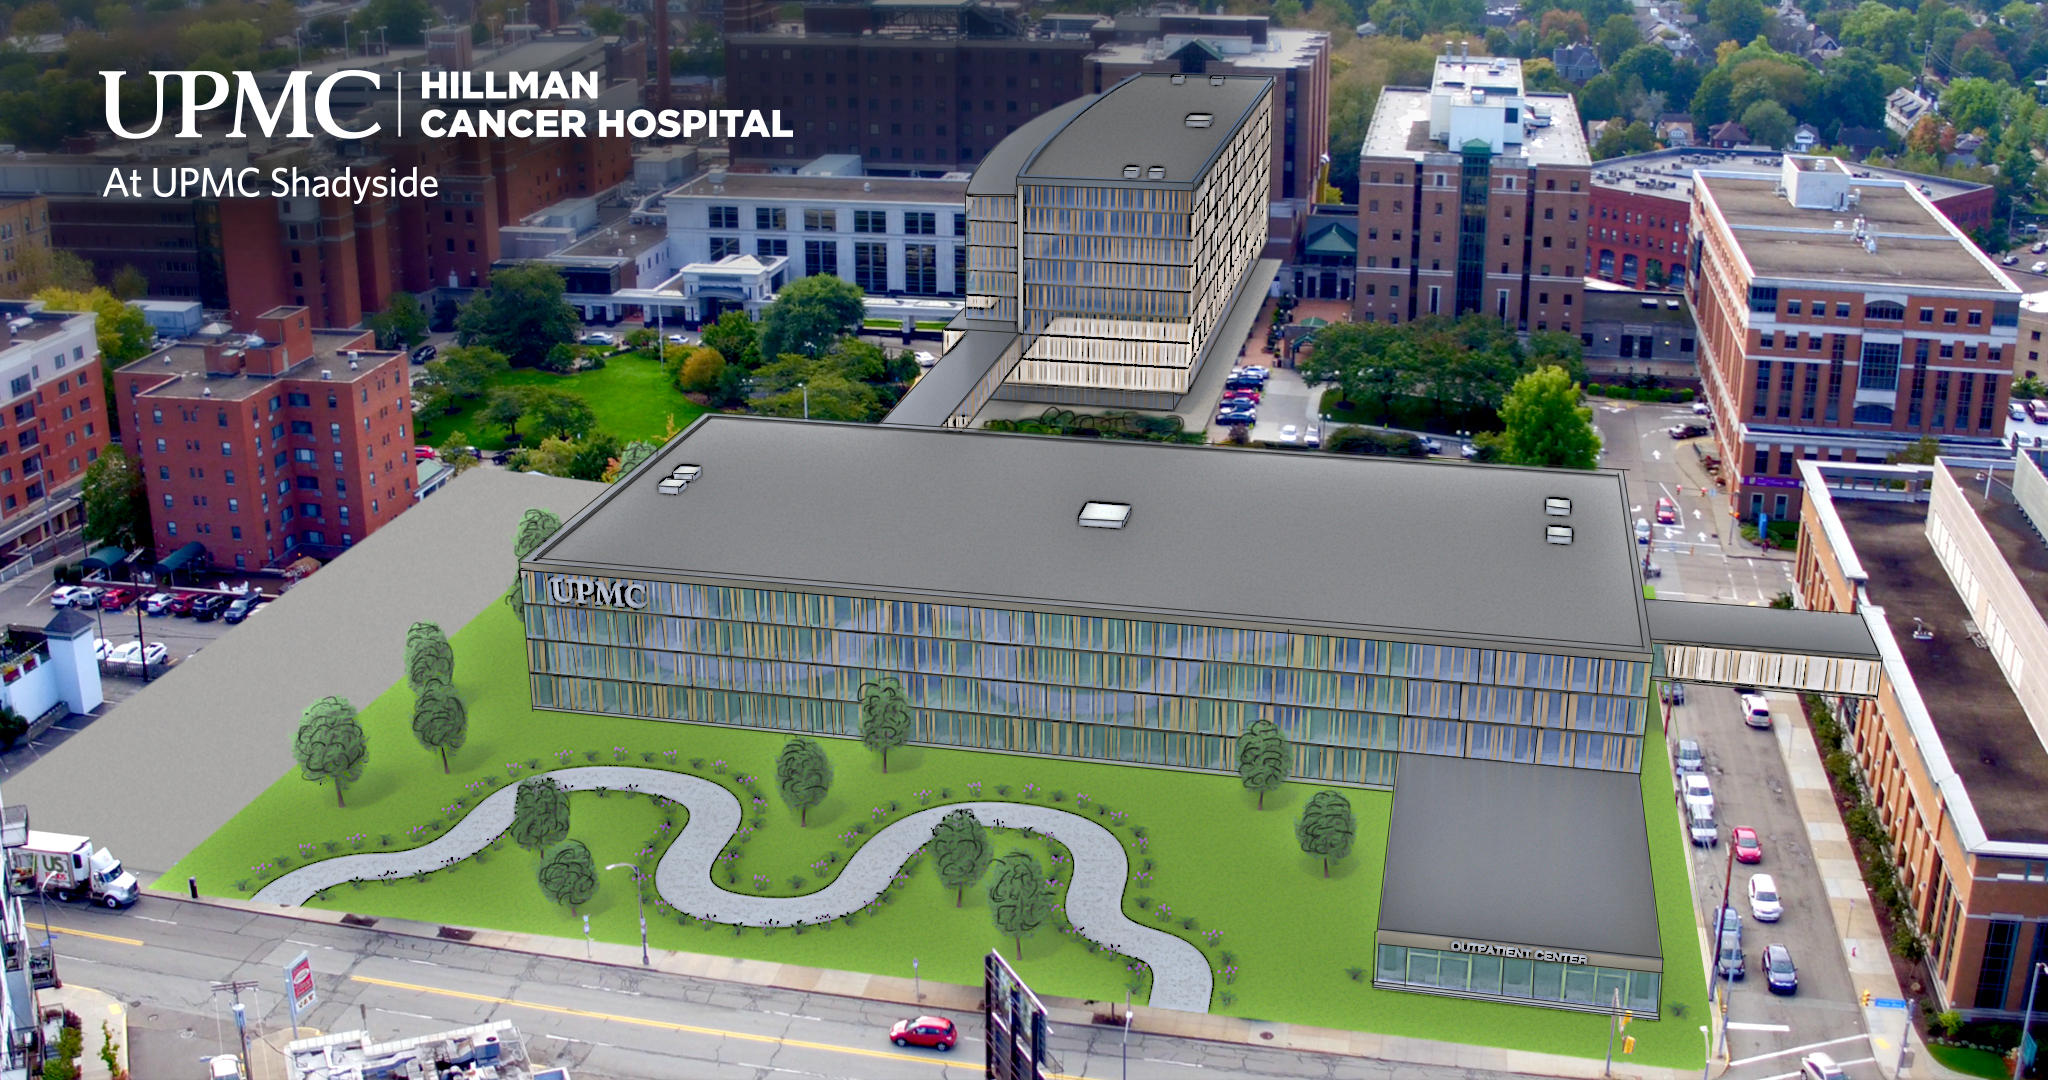 UPMC To Build 3 New Specialty Hospitals With $2B Investment